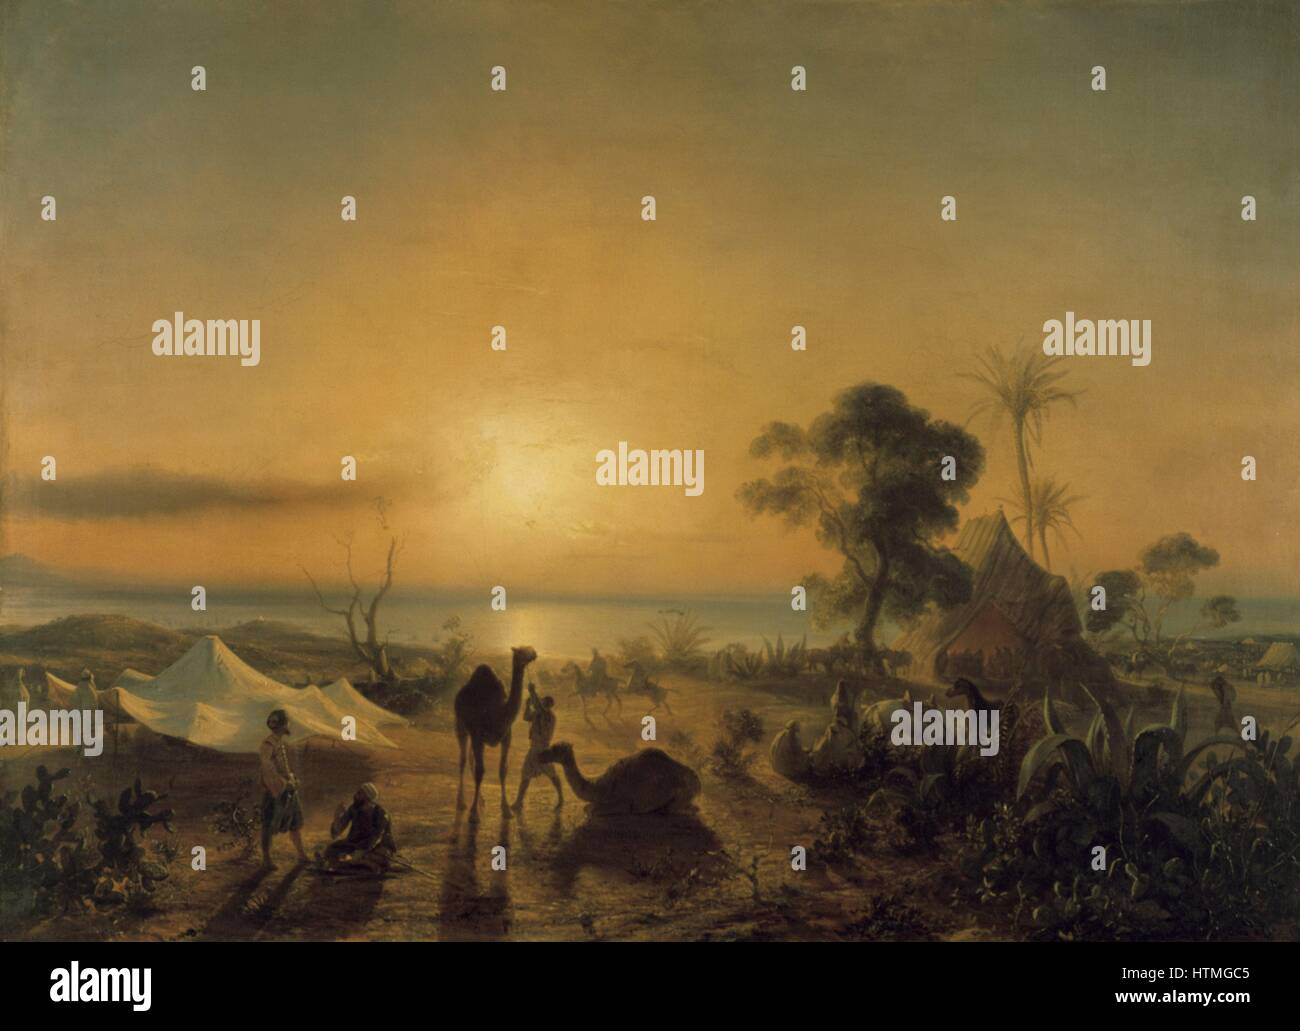 14 June 1830 the Camp at Staoueli. The day of the landing of the French army. The Aga Ibrahim's Tent'. Jean - Stock Image